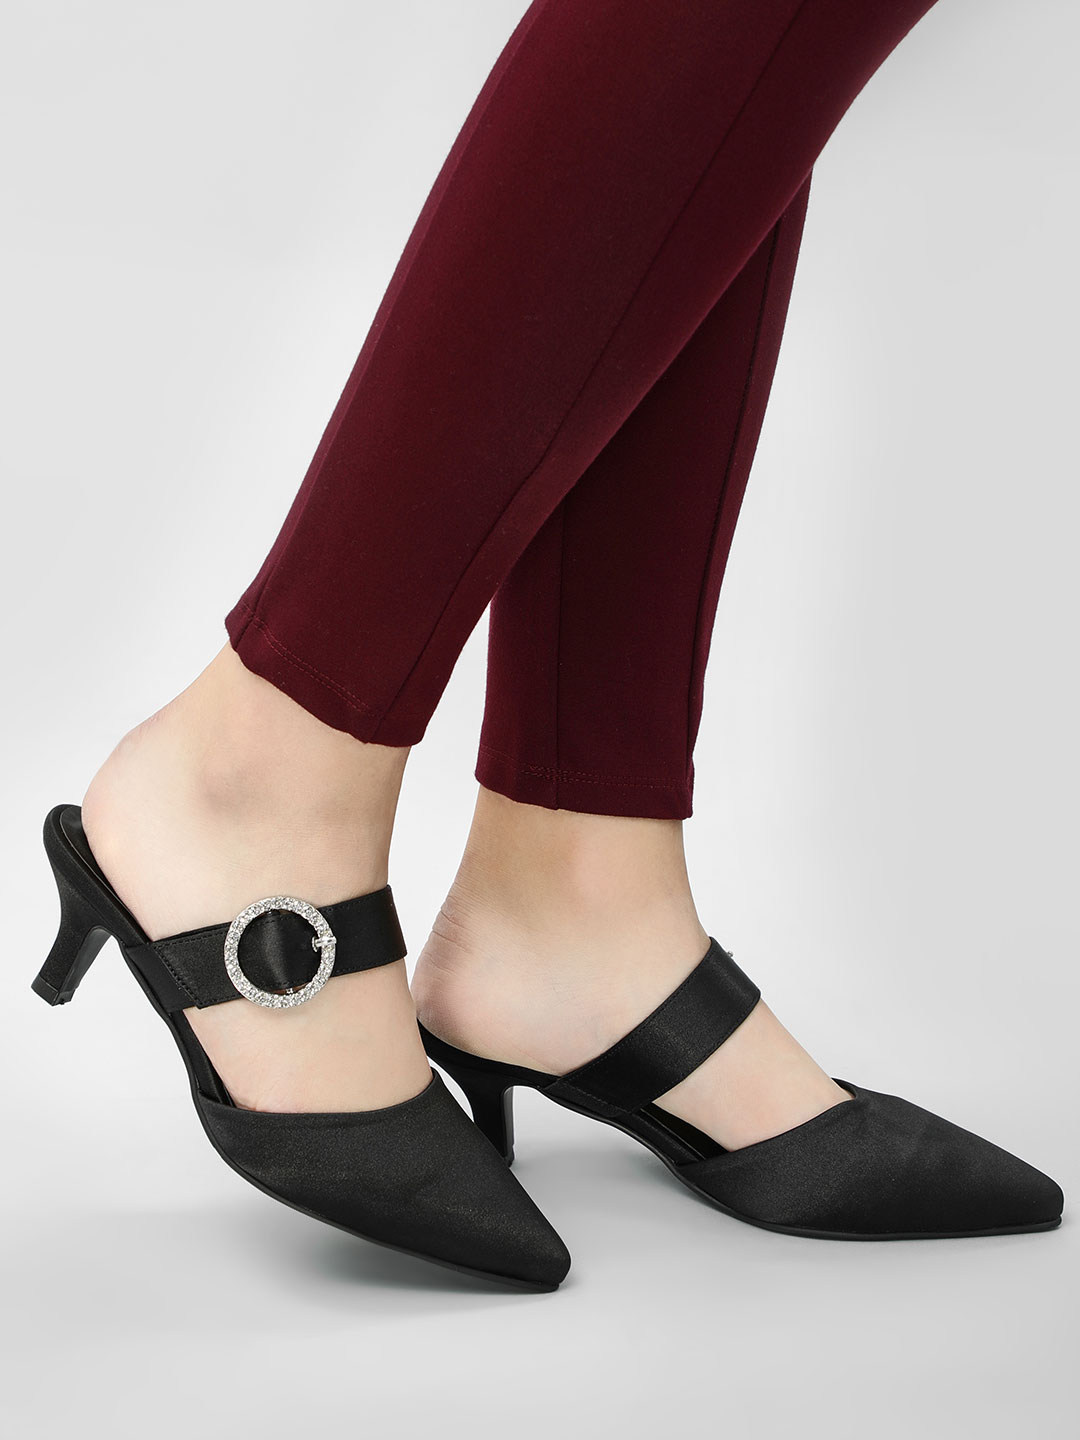 KOOVS Black Diamante Buckle Kitten Heels 1